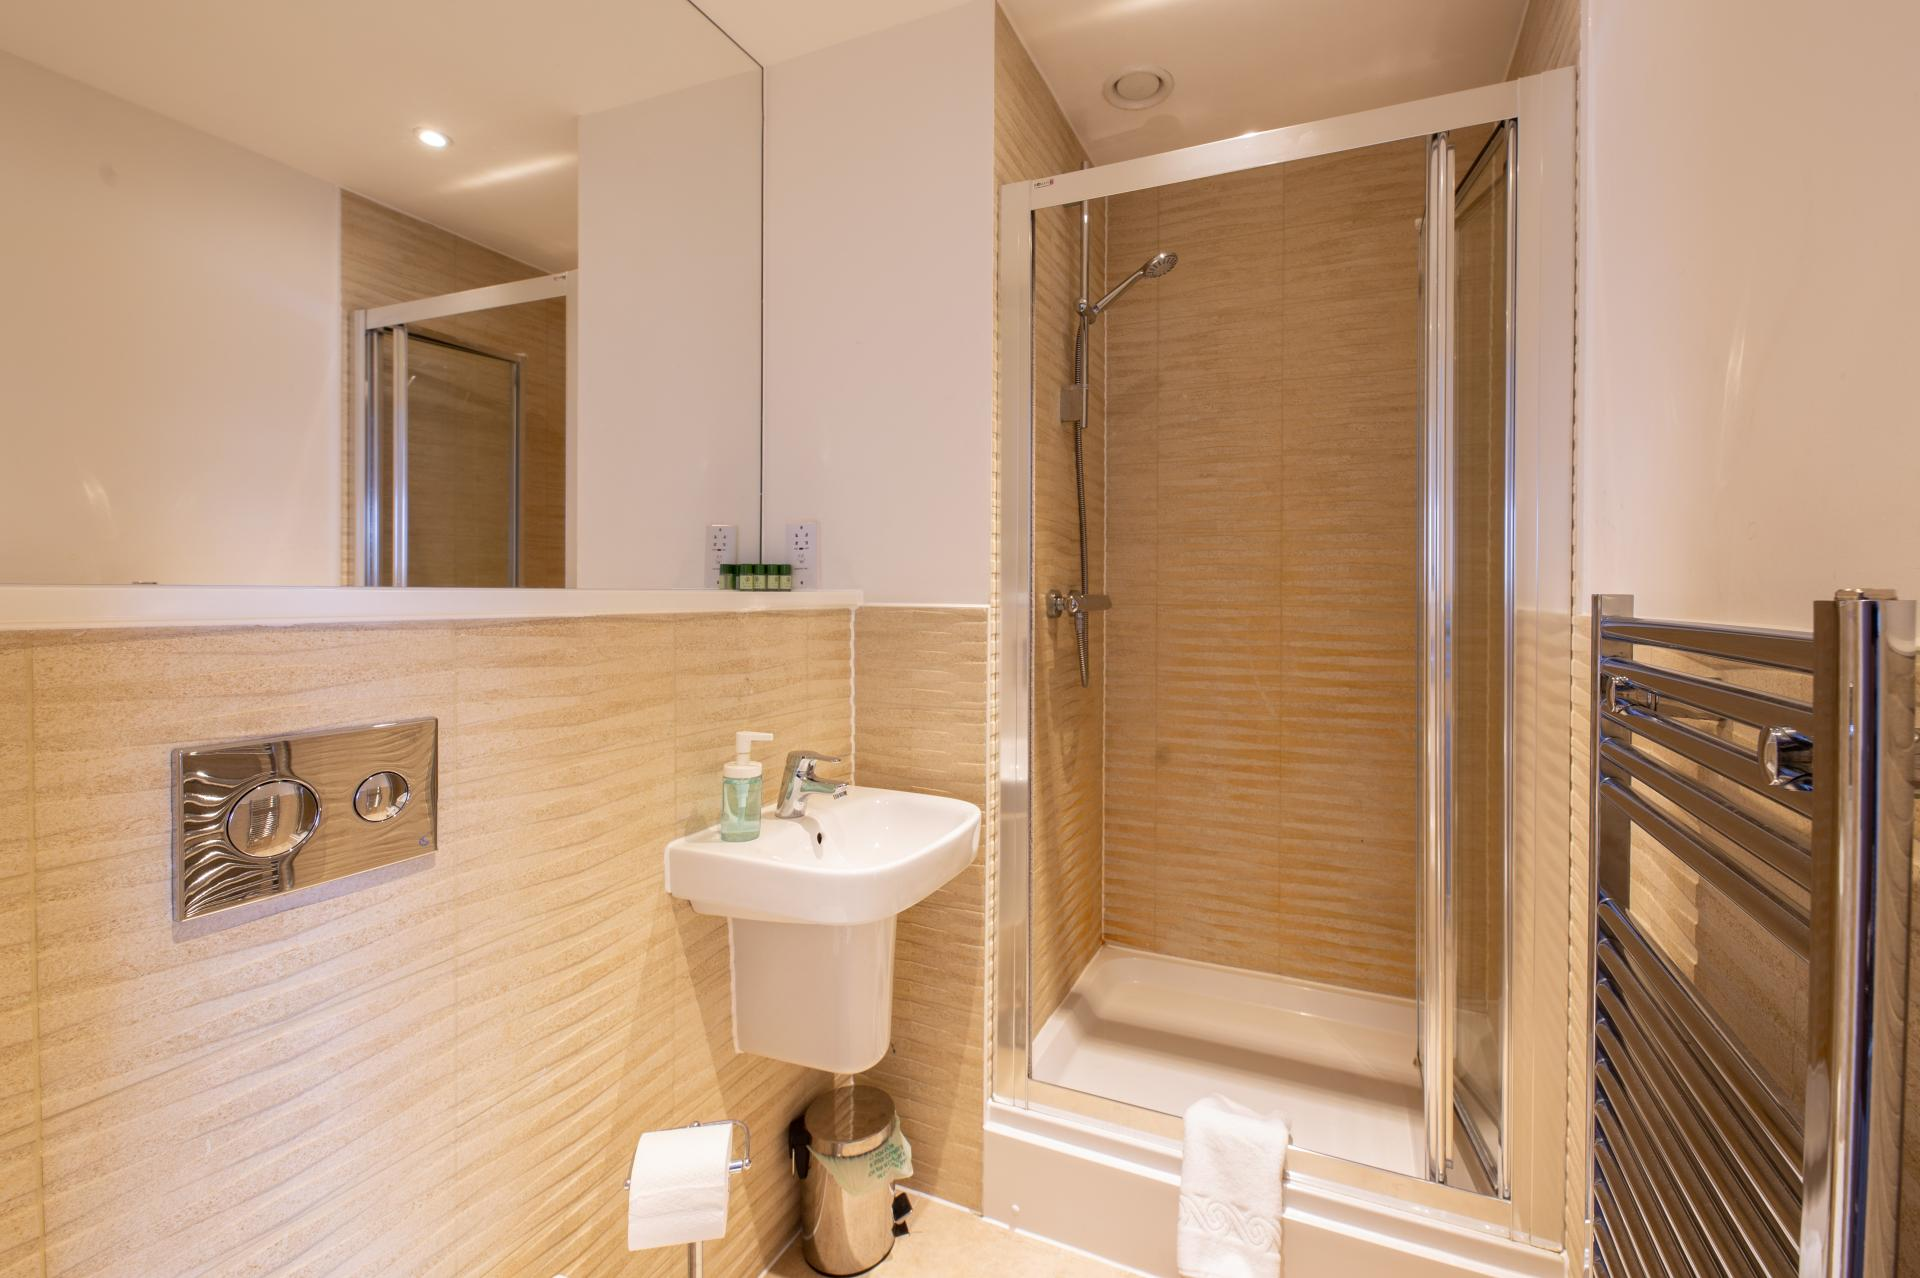 Shower at Austen House, Centre, Guildford - Citybase Apartments